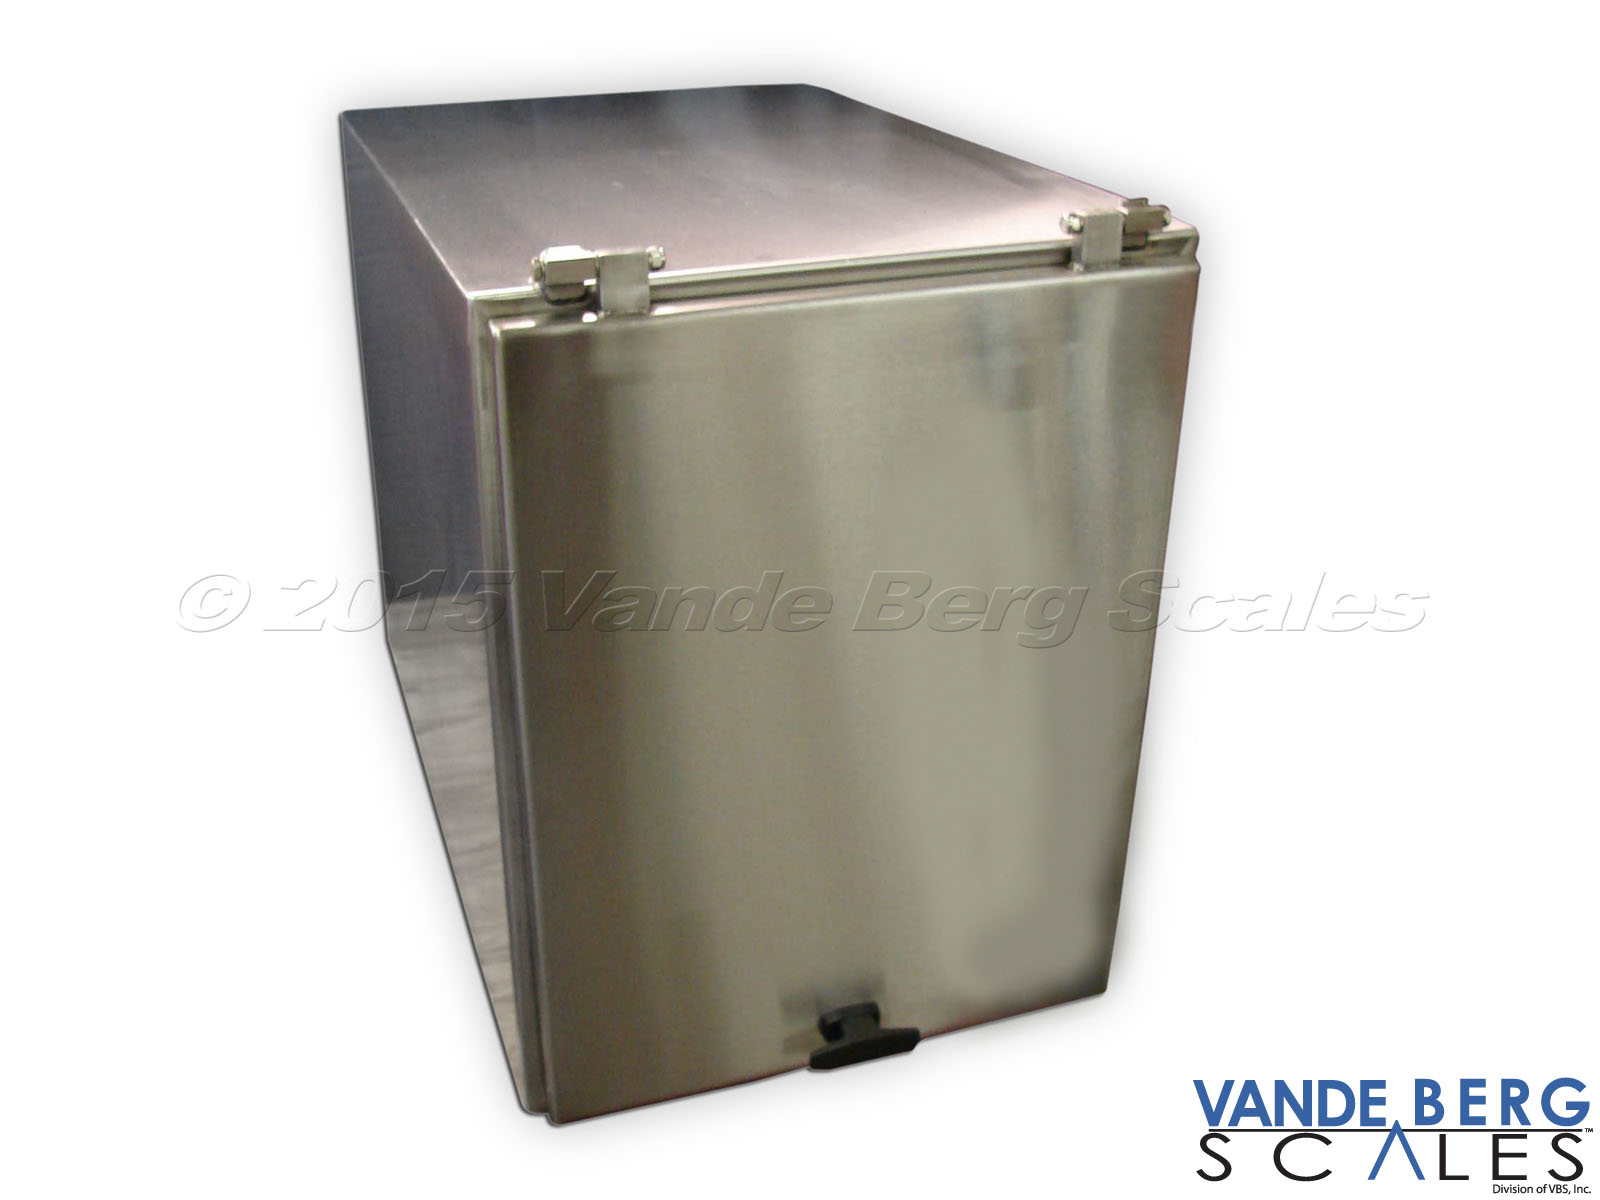 Stainless Steel Printer Enclosure - Door swings 270-degrees ensuring it is out of the way during use.